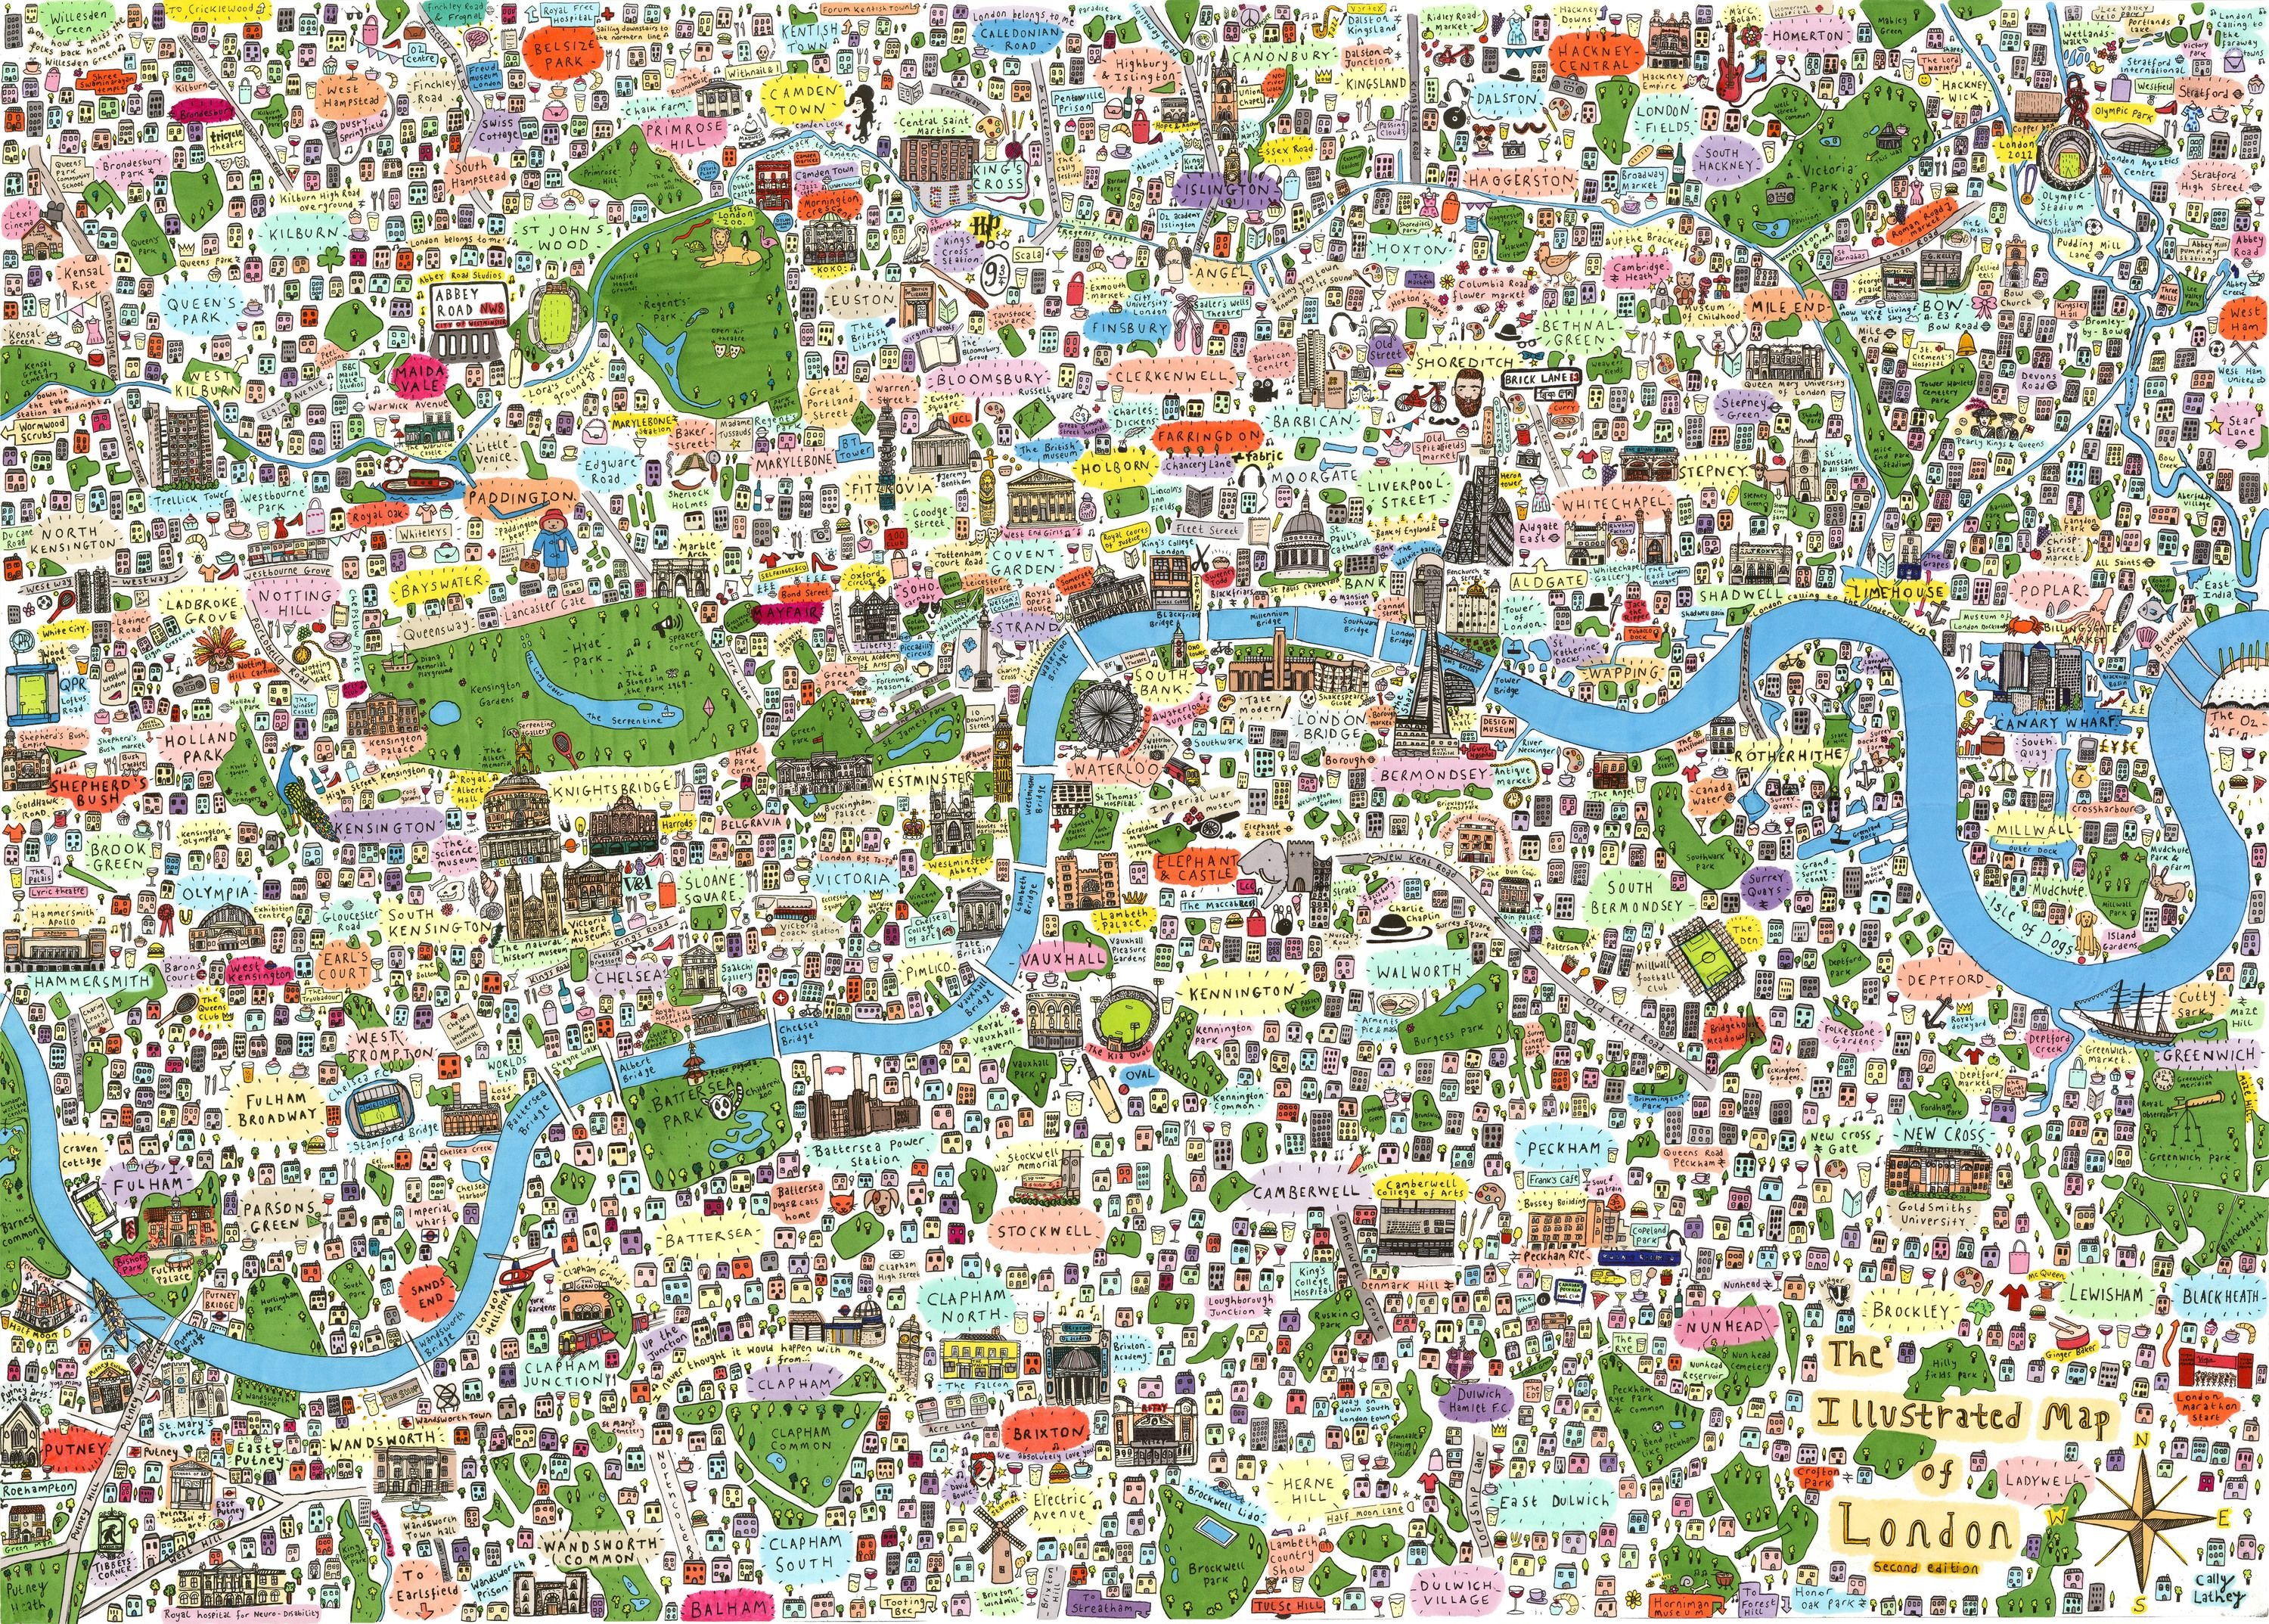 Map Of London With Famous Landmarks.Check Out This Lovely Illustrated Map Of London London